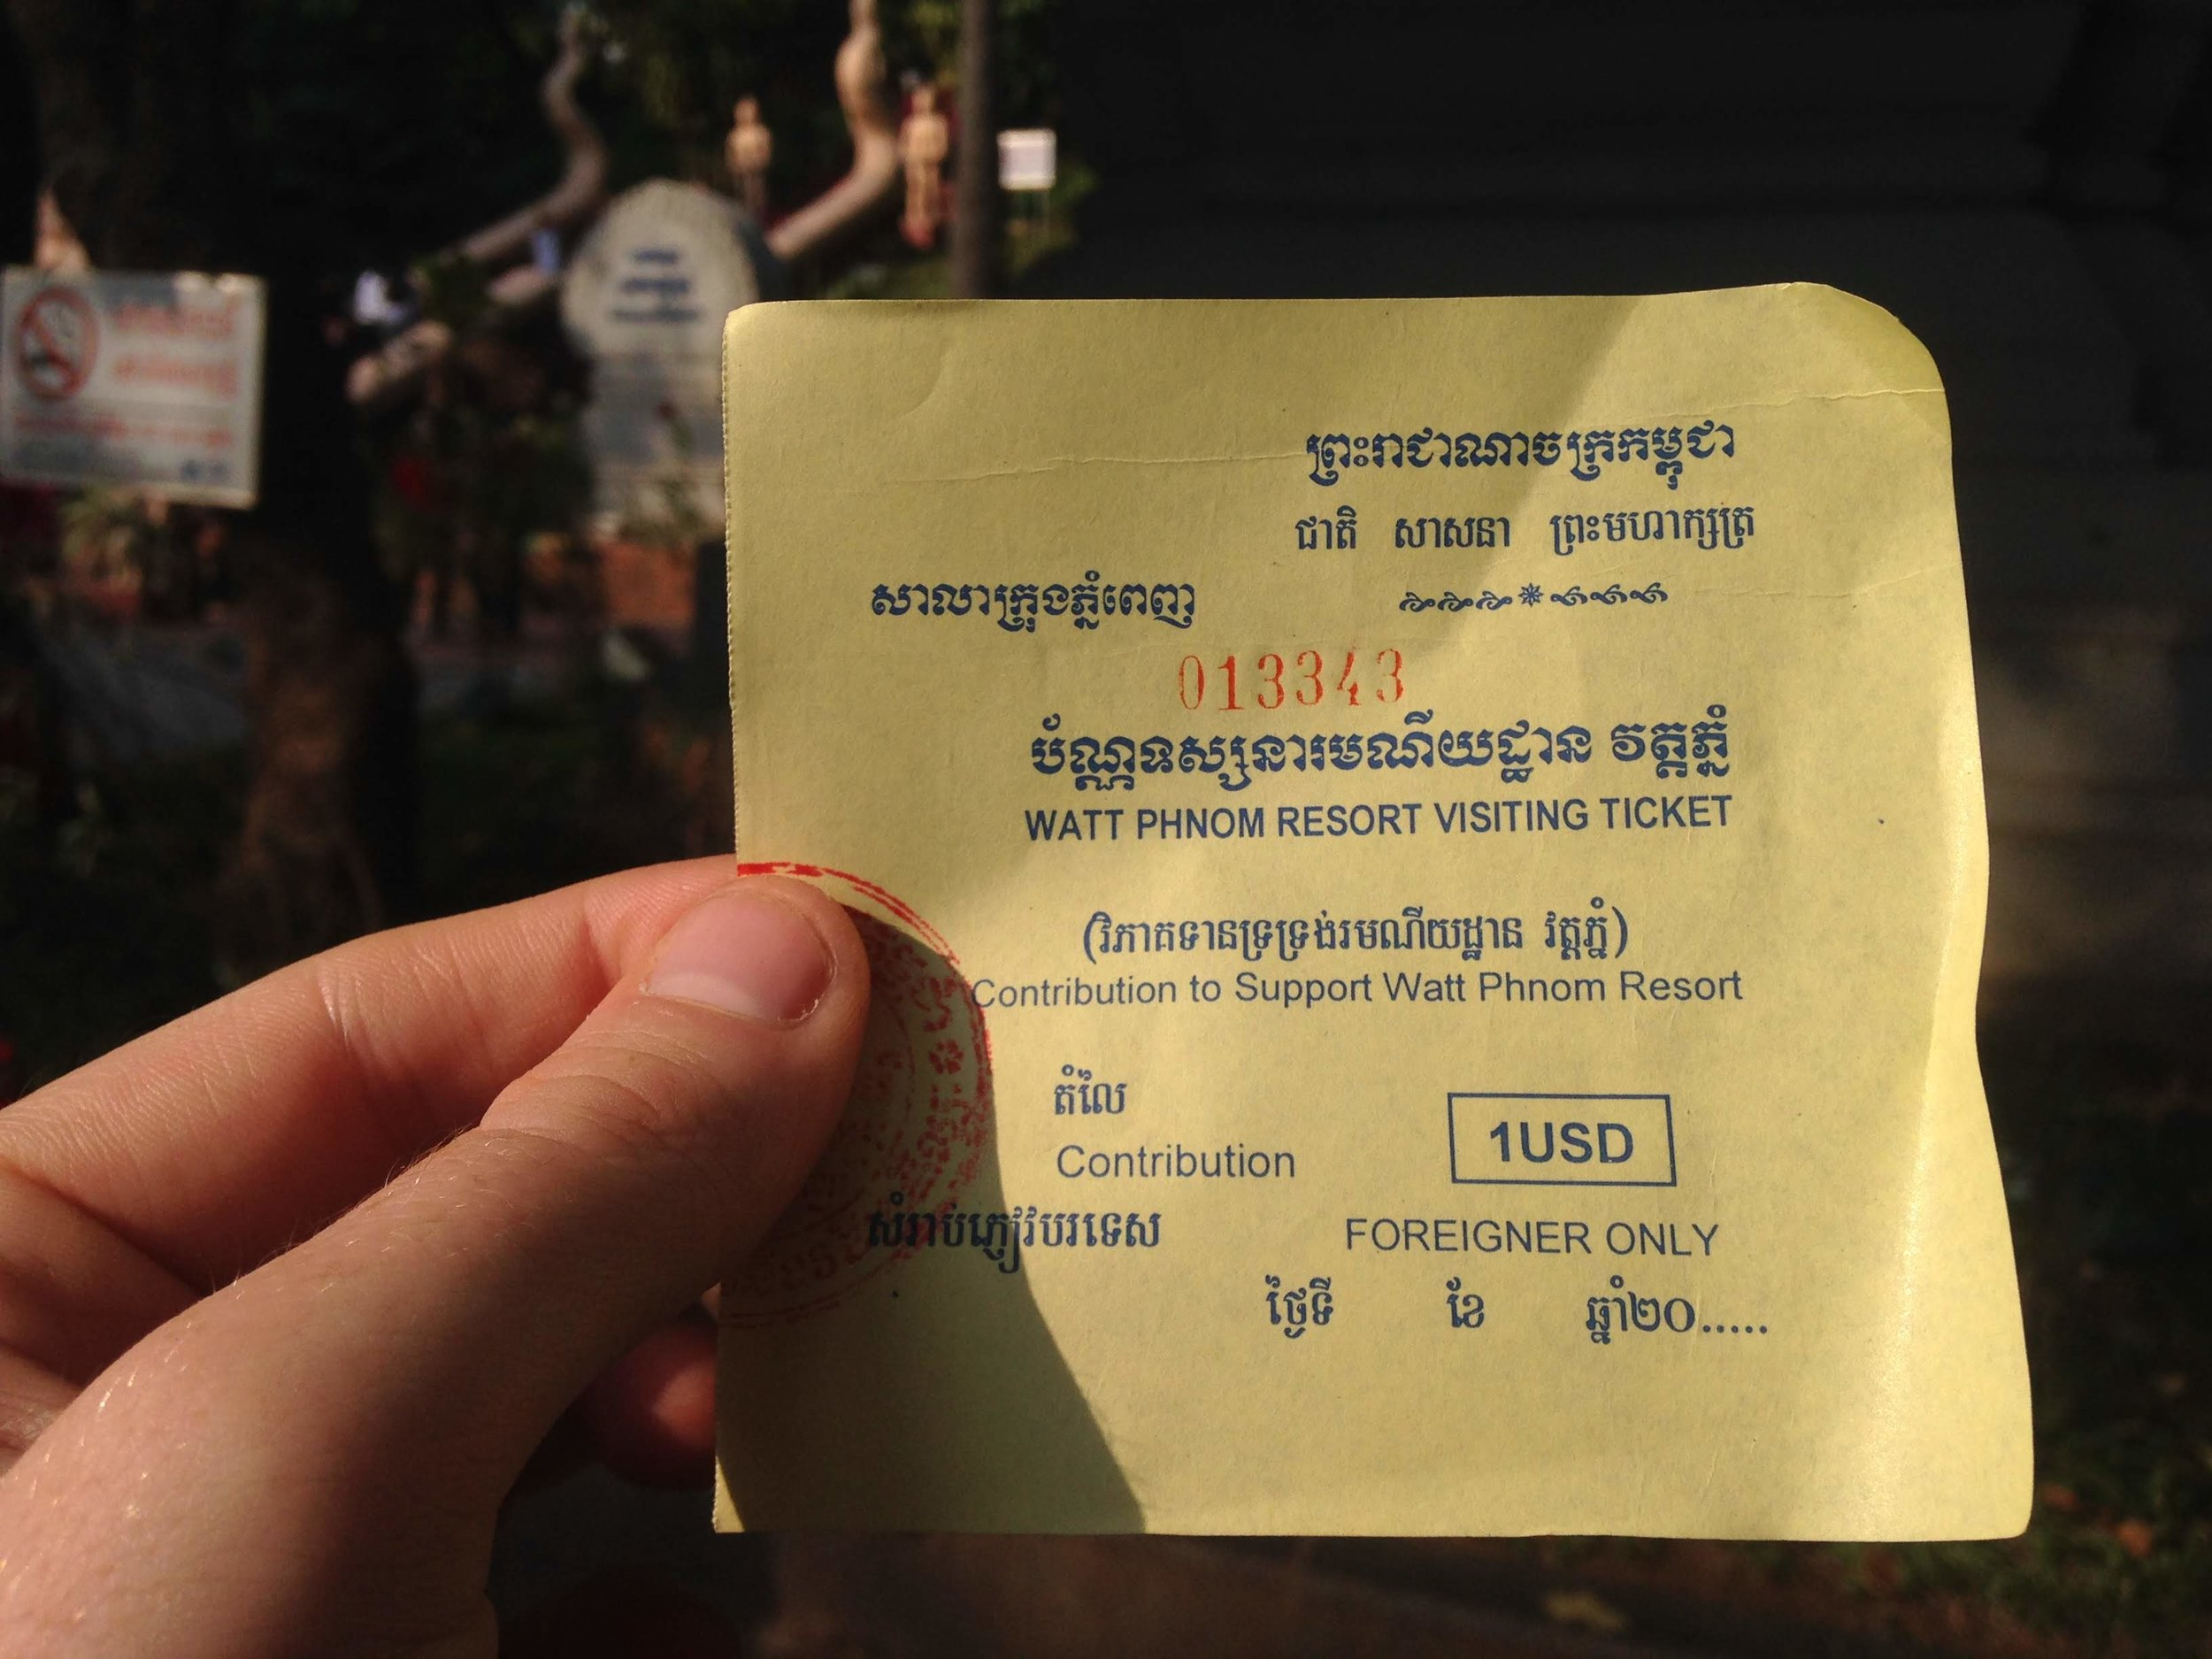 a ticket to visit Wat Phnom costs $1